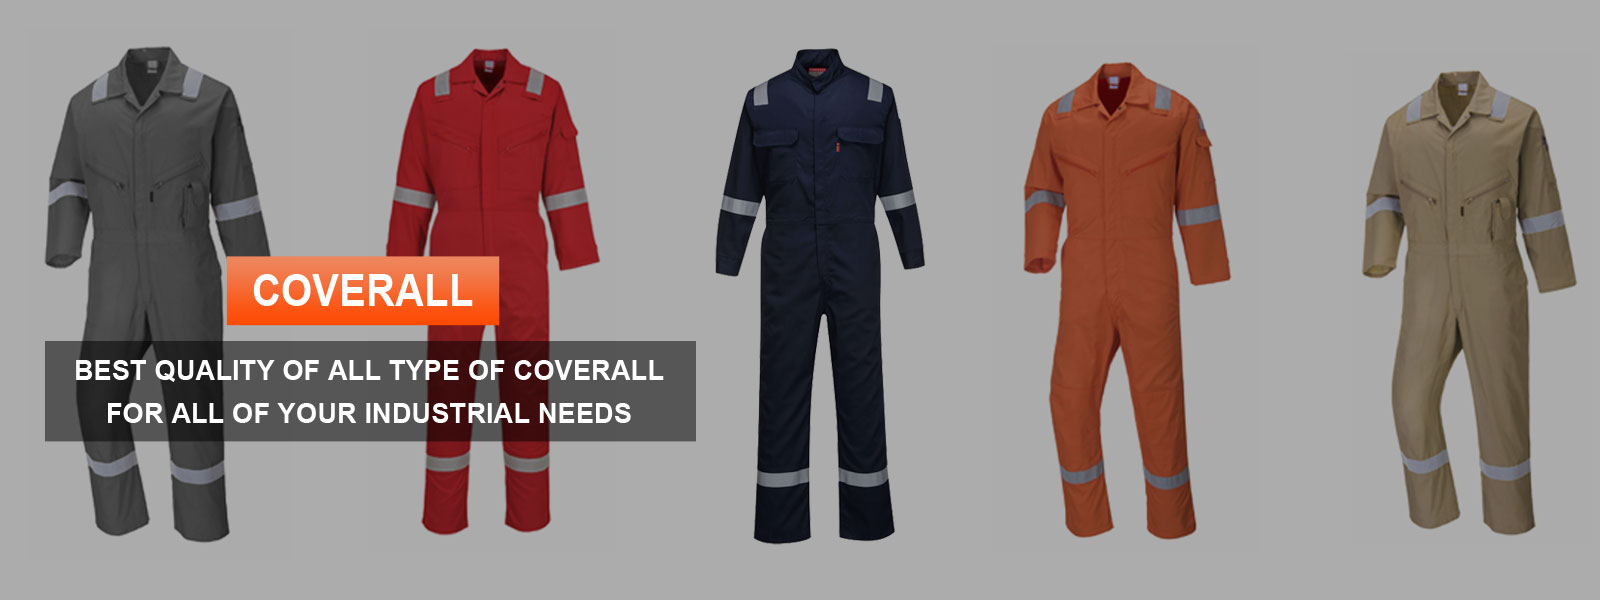 Coverall Manufacturers in Portugal